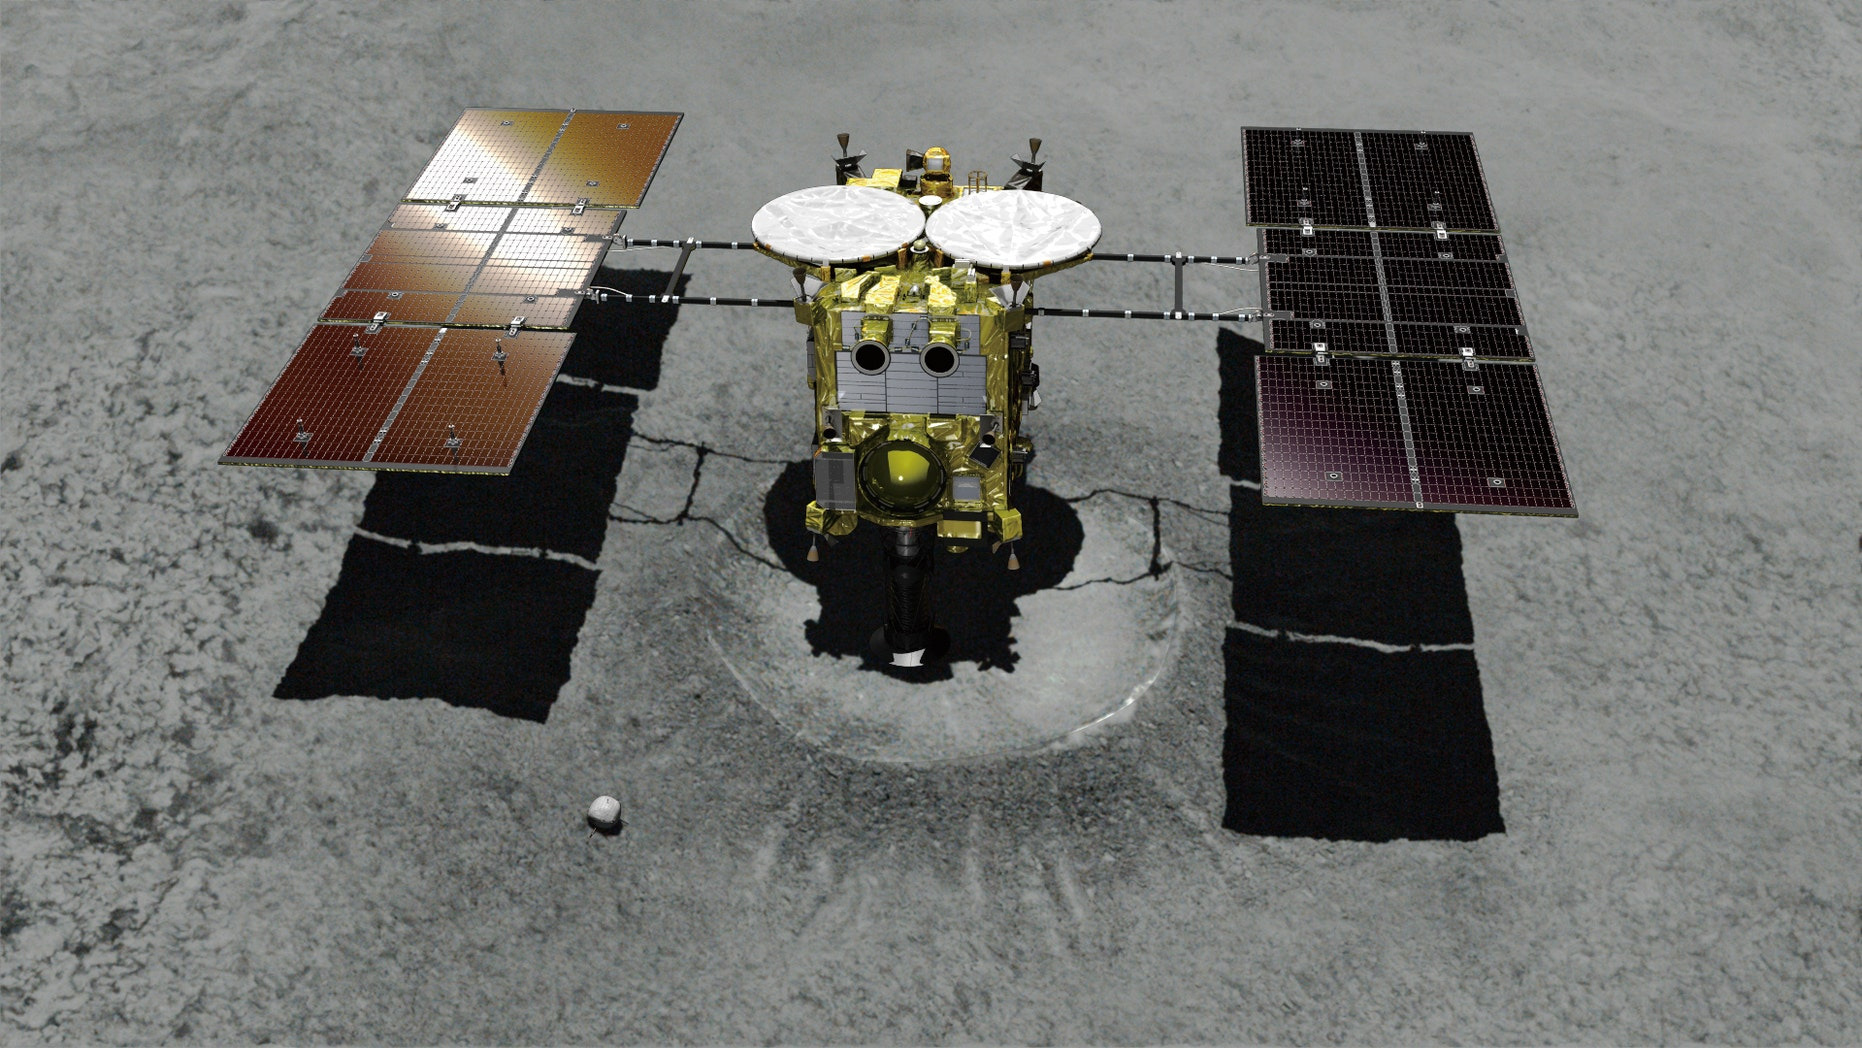 An illustration of the Japanese unmanned spacecraft Hayabusa2 approaching asteroid Ryugu.